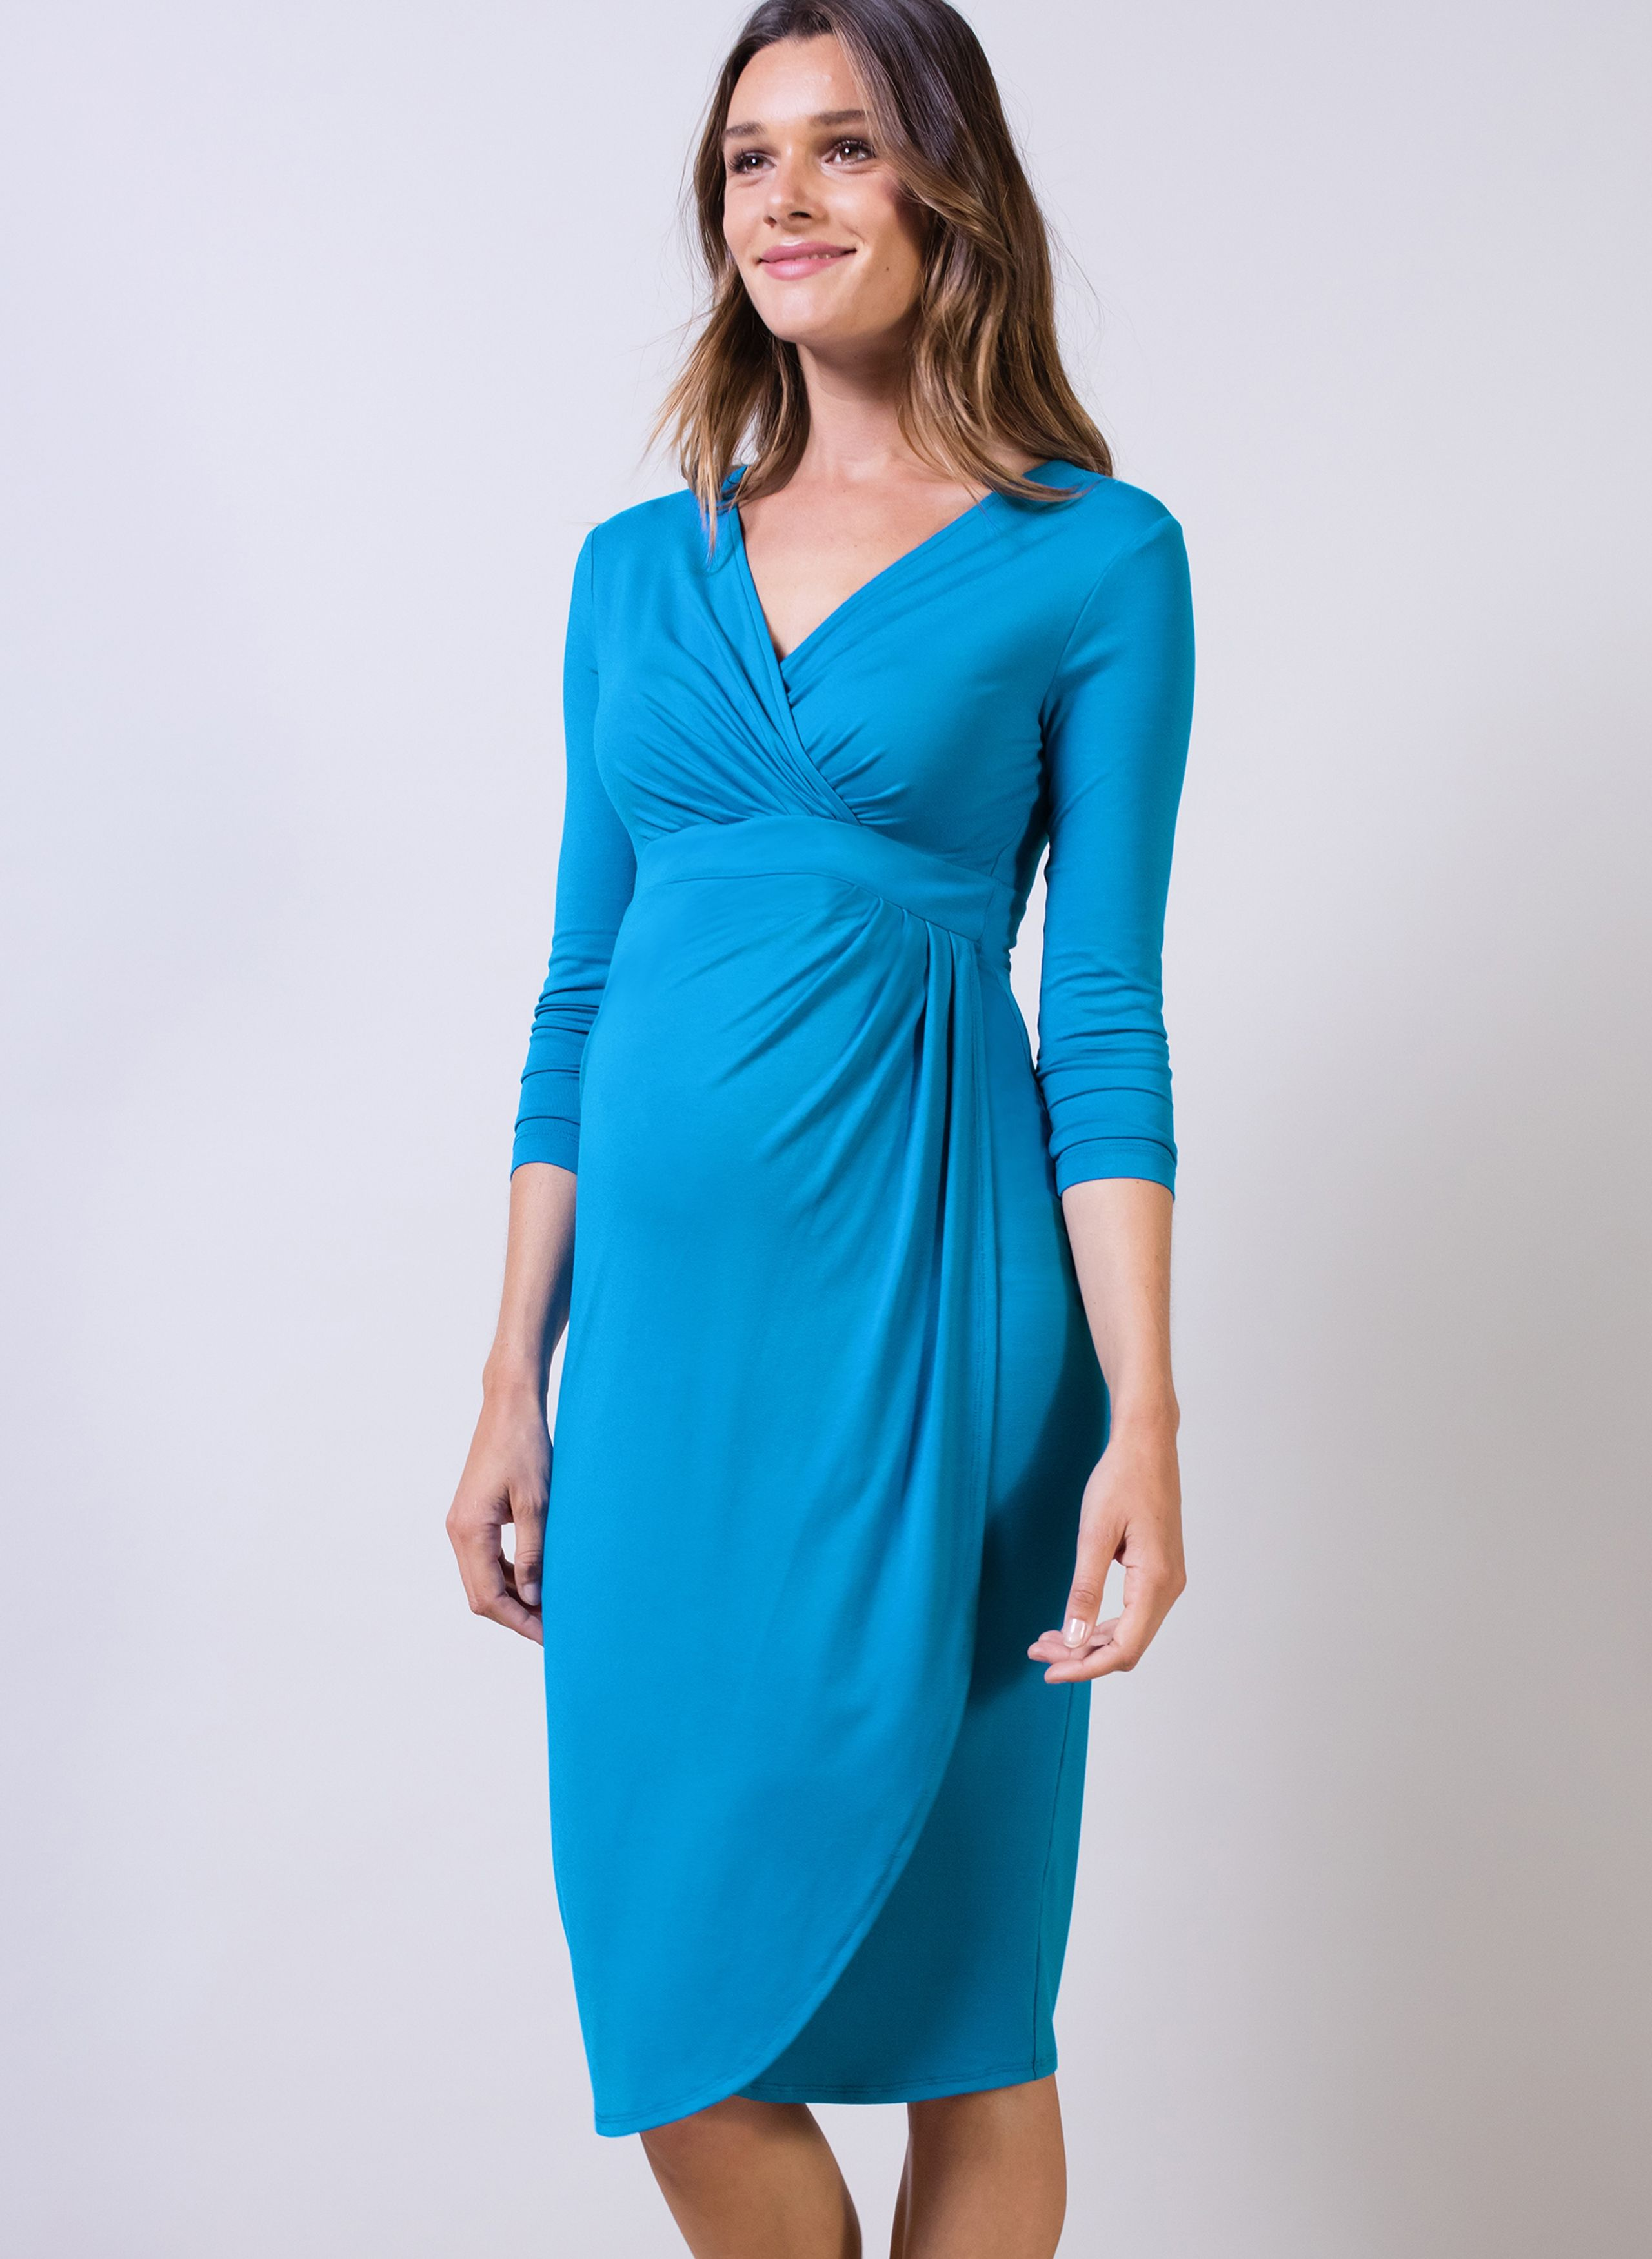 Evesham maternity dress shops clothes and dress in evesham maternity dress ombrellifo Image collections